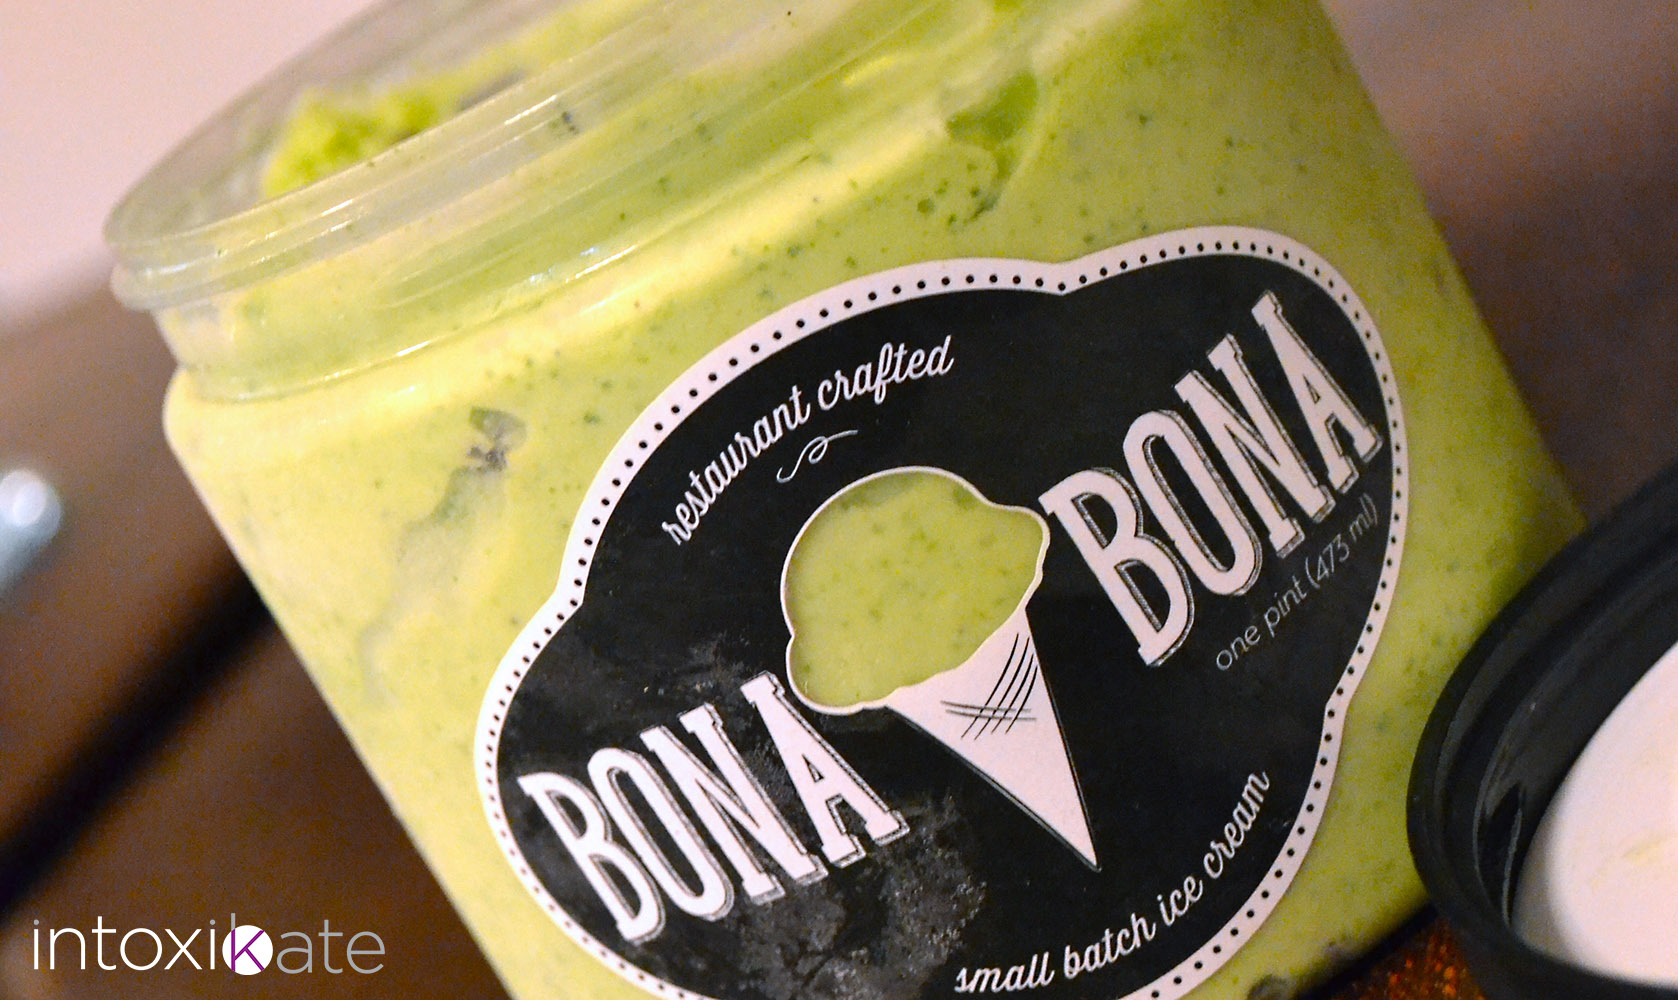 bona bona ice cream